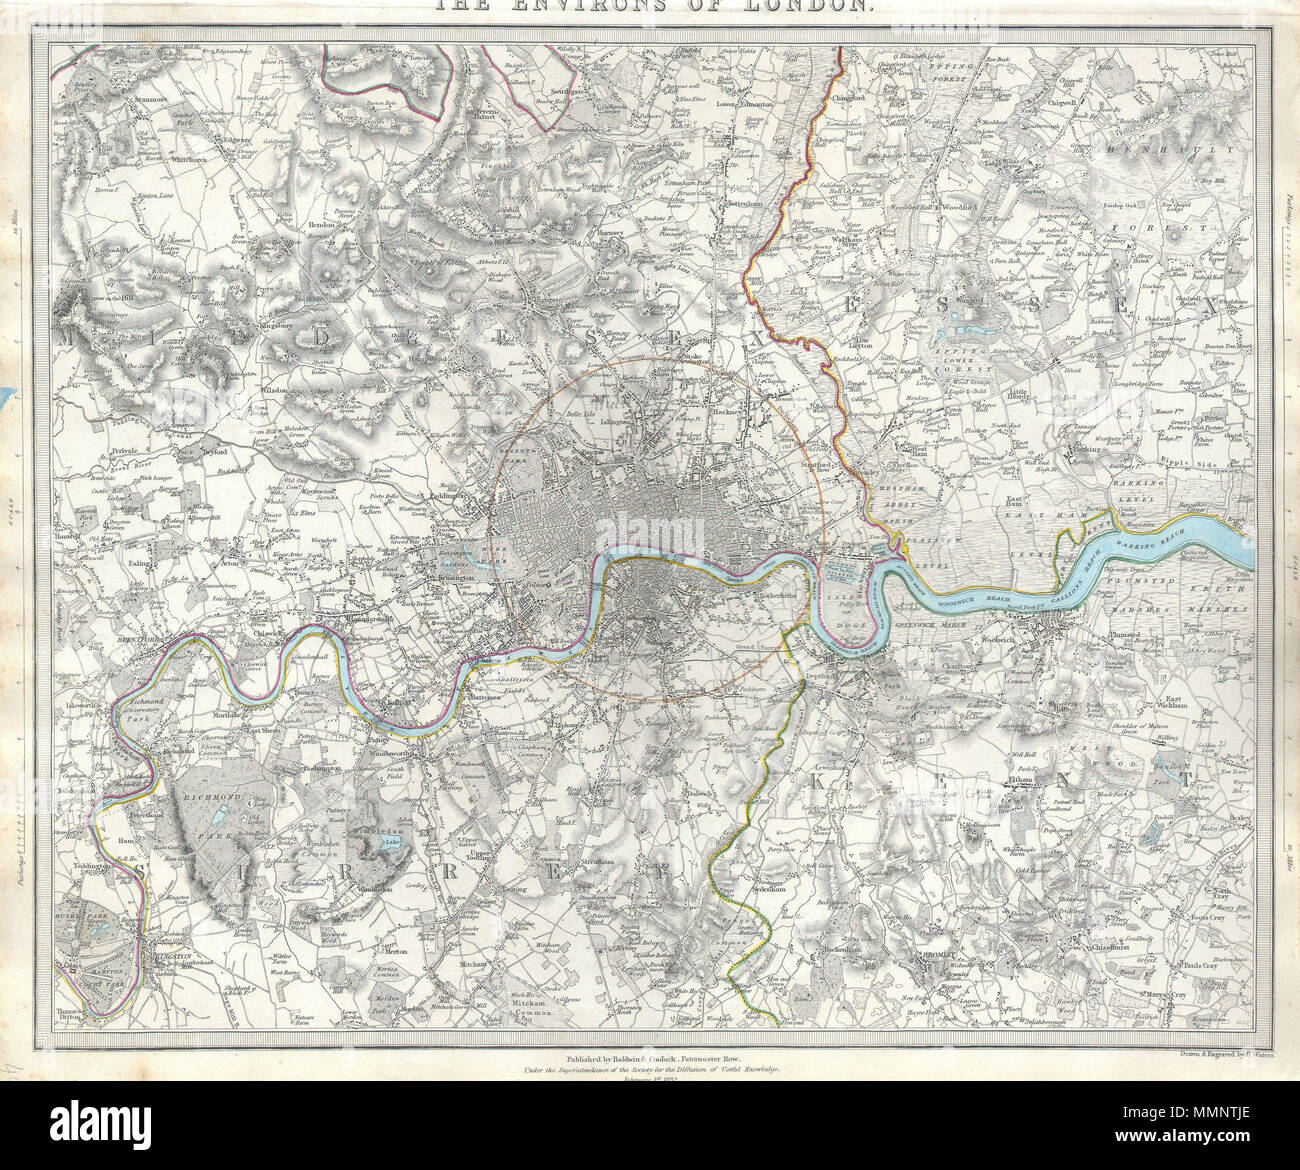 English A Difficult To Find Map Of The Vicinity Of London England